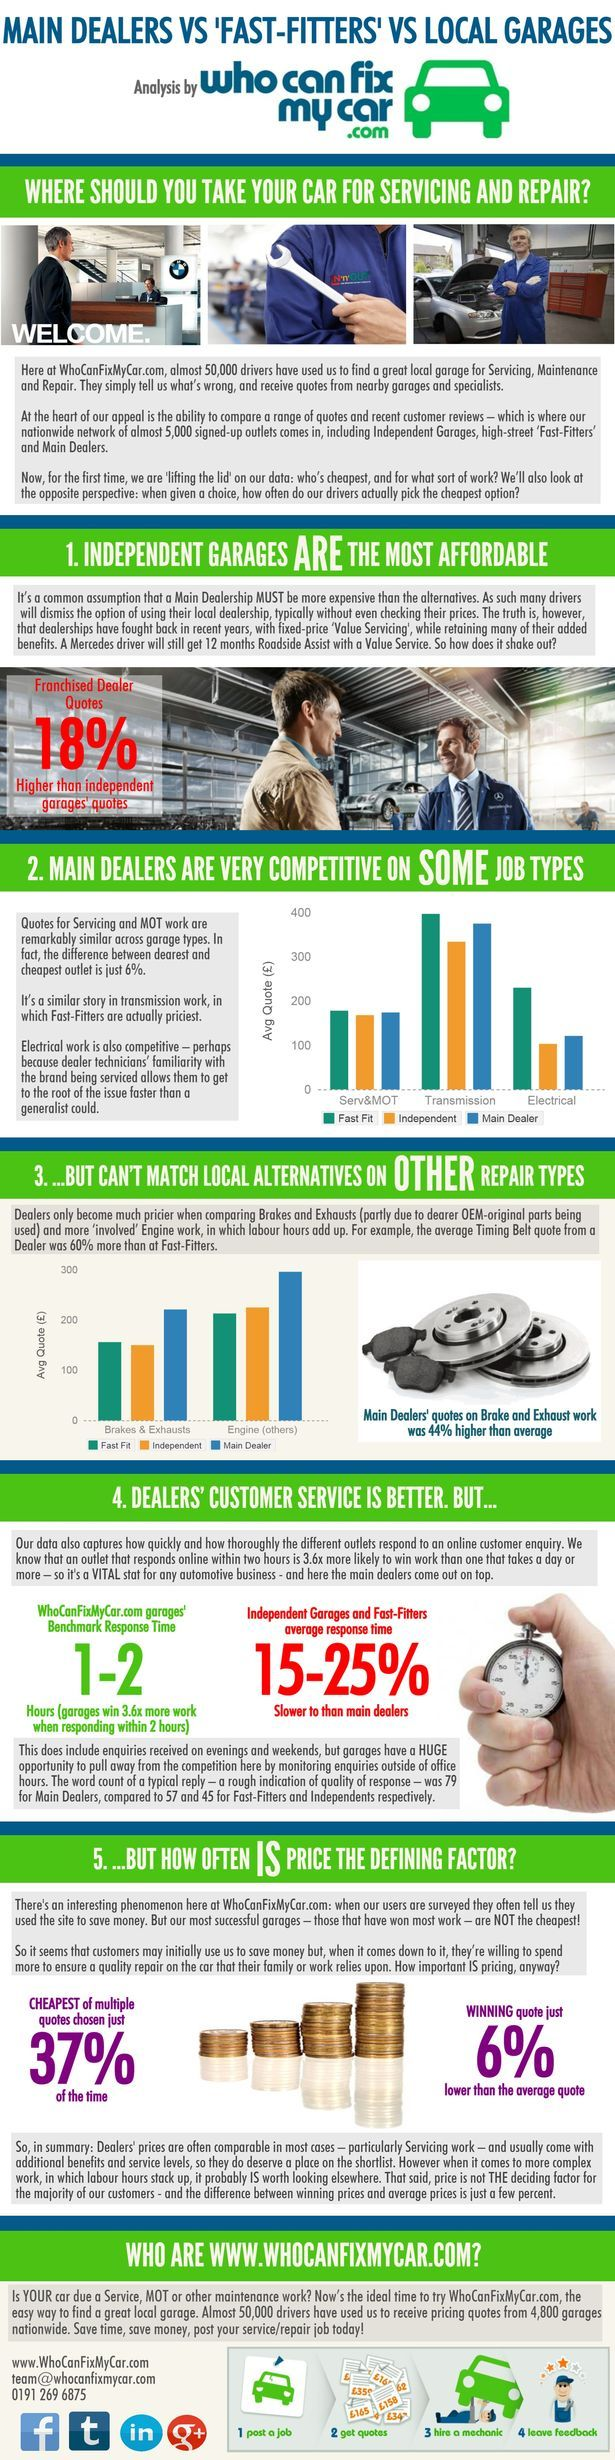 Where is cheaper for car servicing: main dealerships, local garages or fast fitters?